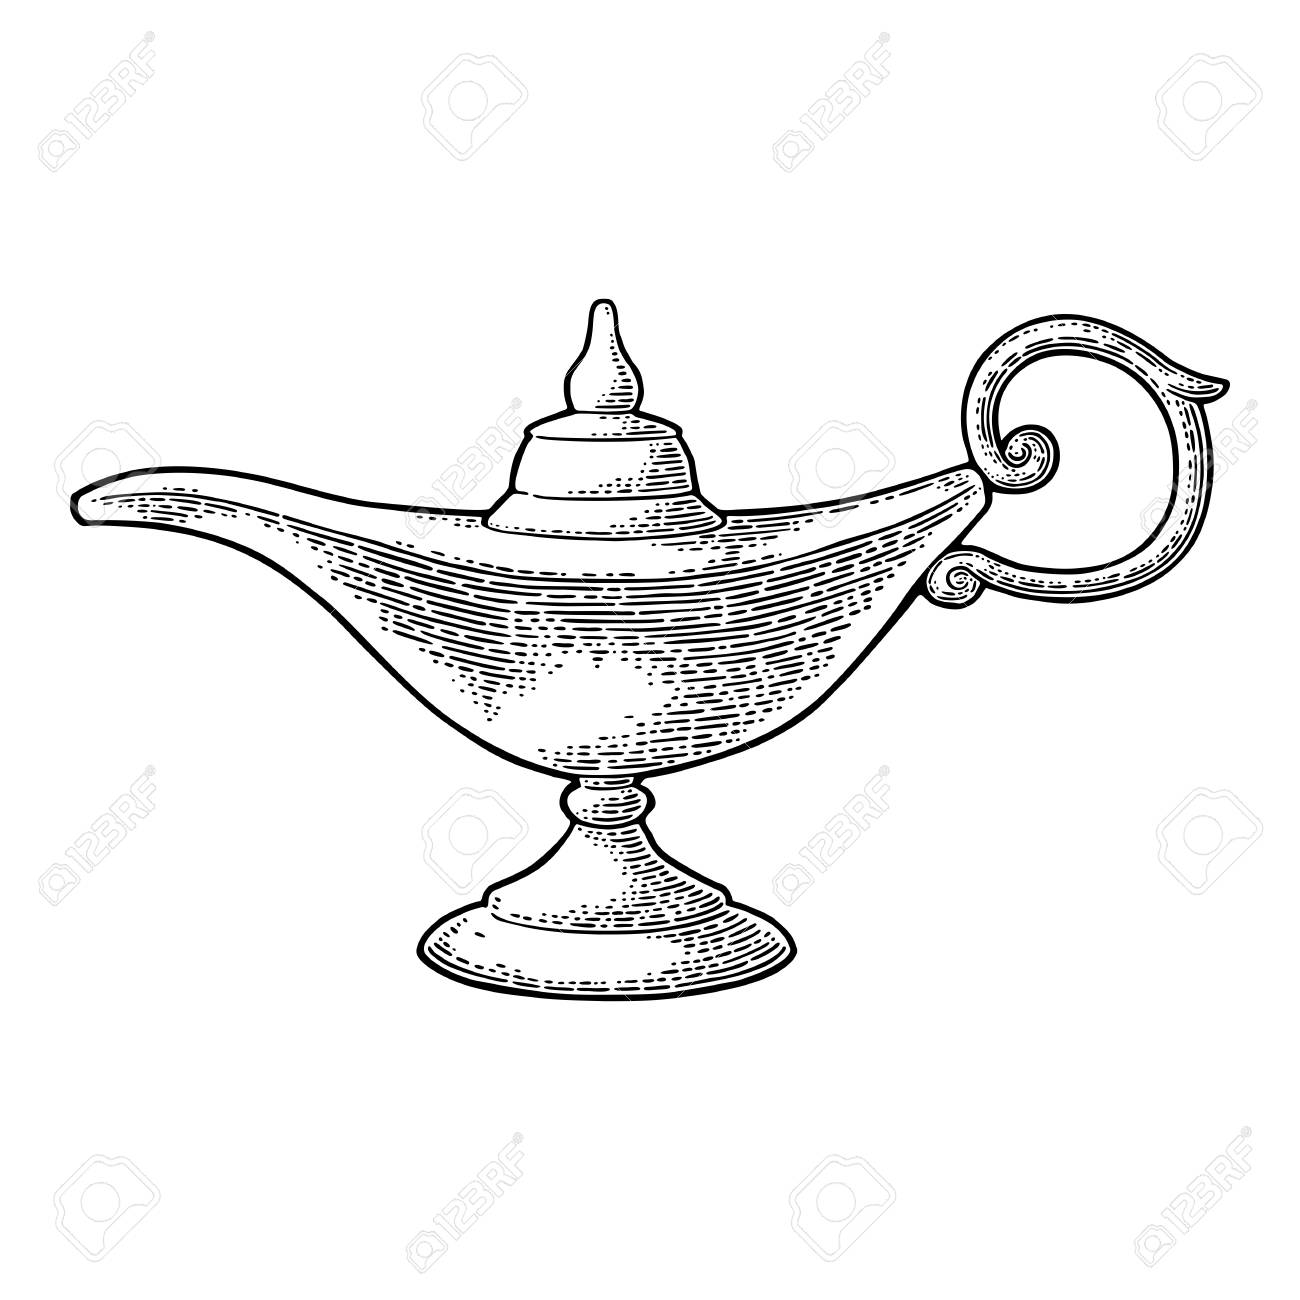 Aladdin magic metal lamp vector black vintage engraving illustration